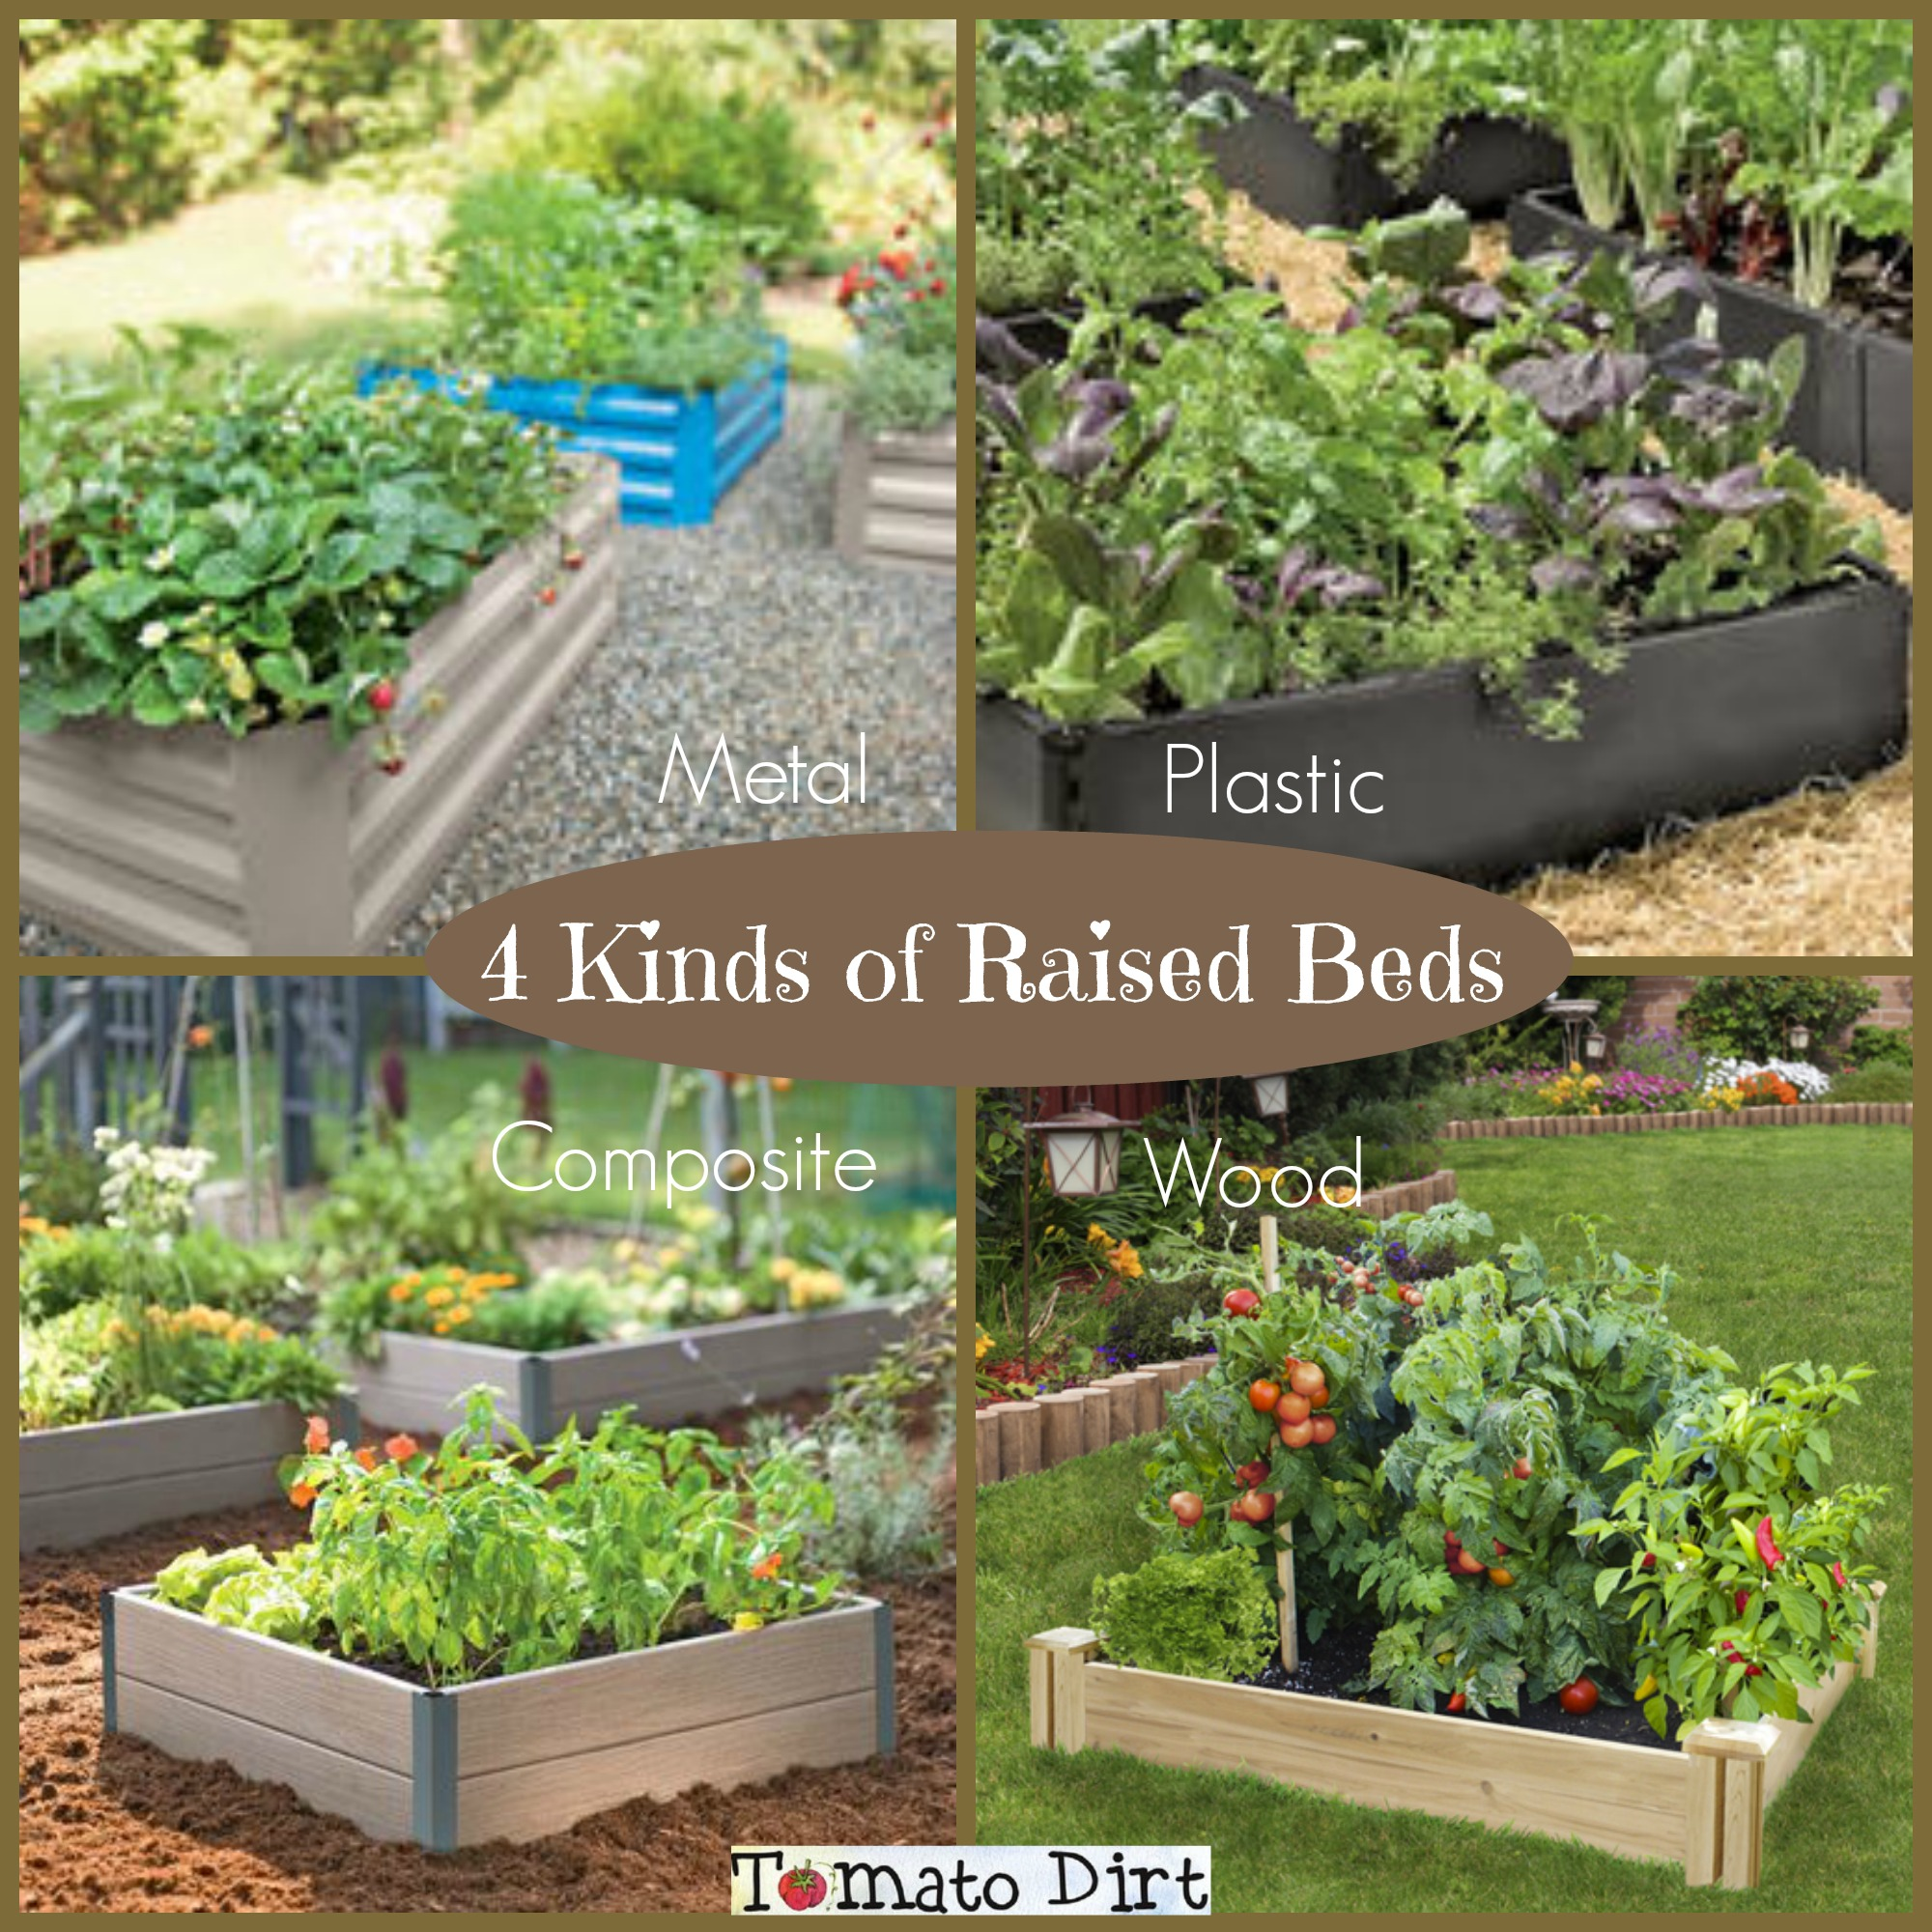 planter best dp outdoor choice raised tier garden com products vegetable gardening kit amazon bed elevated beds